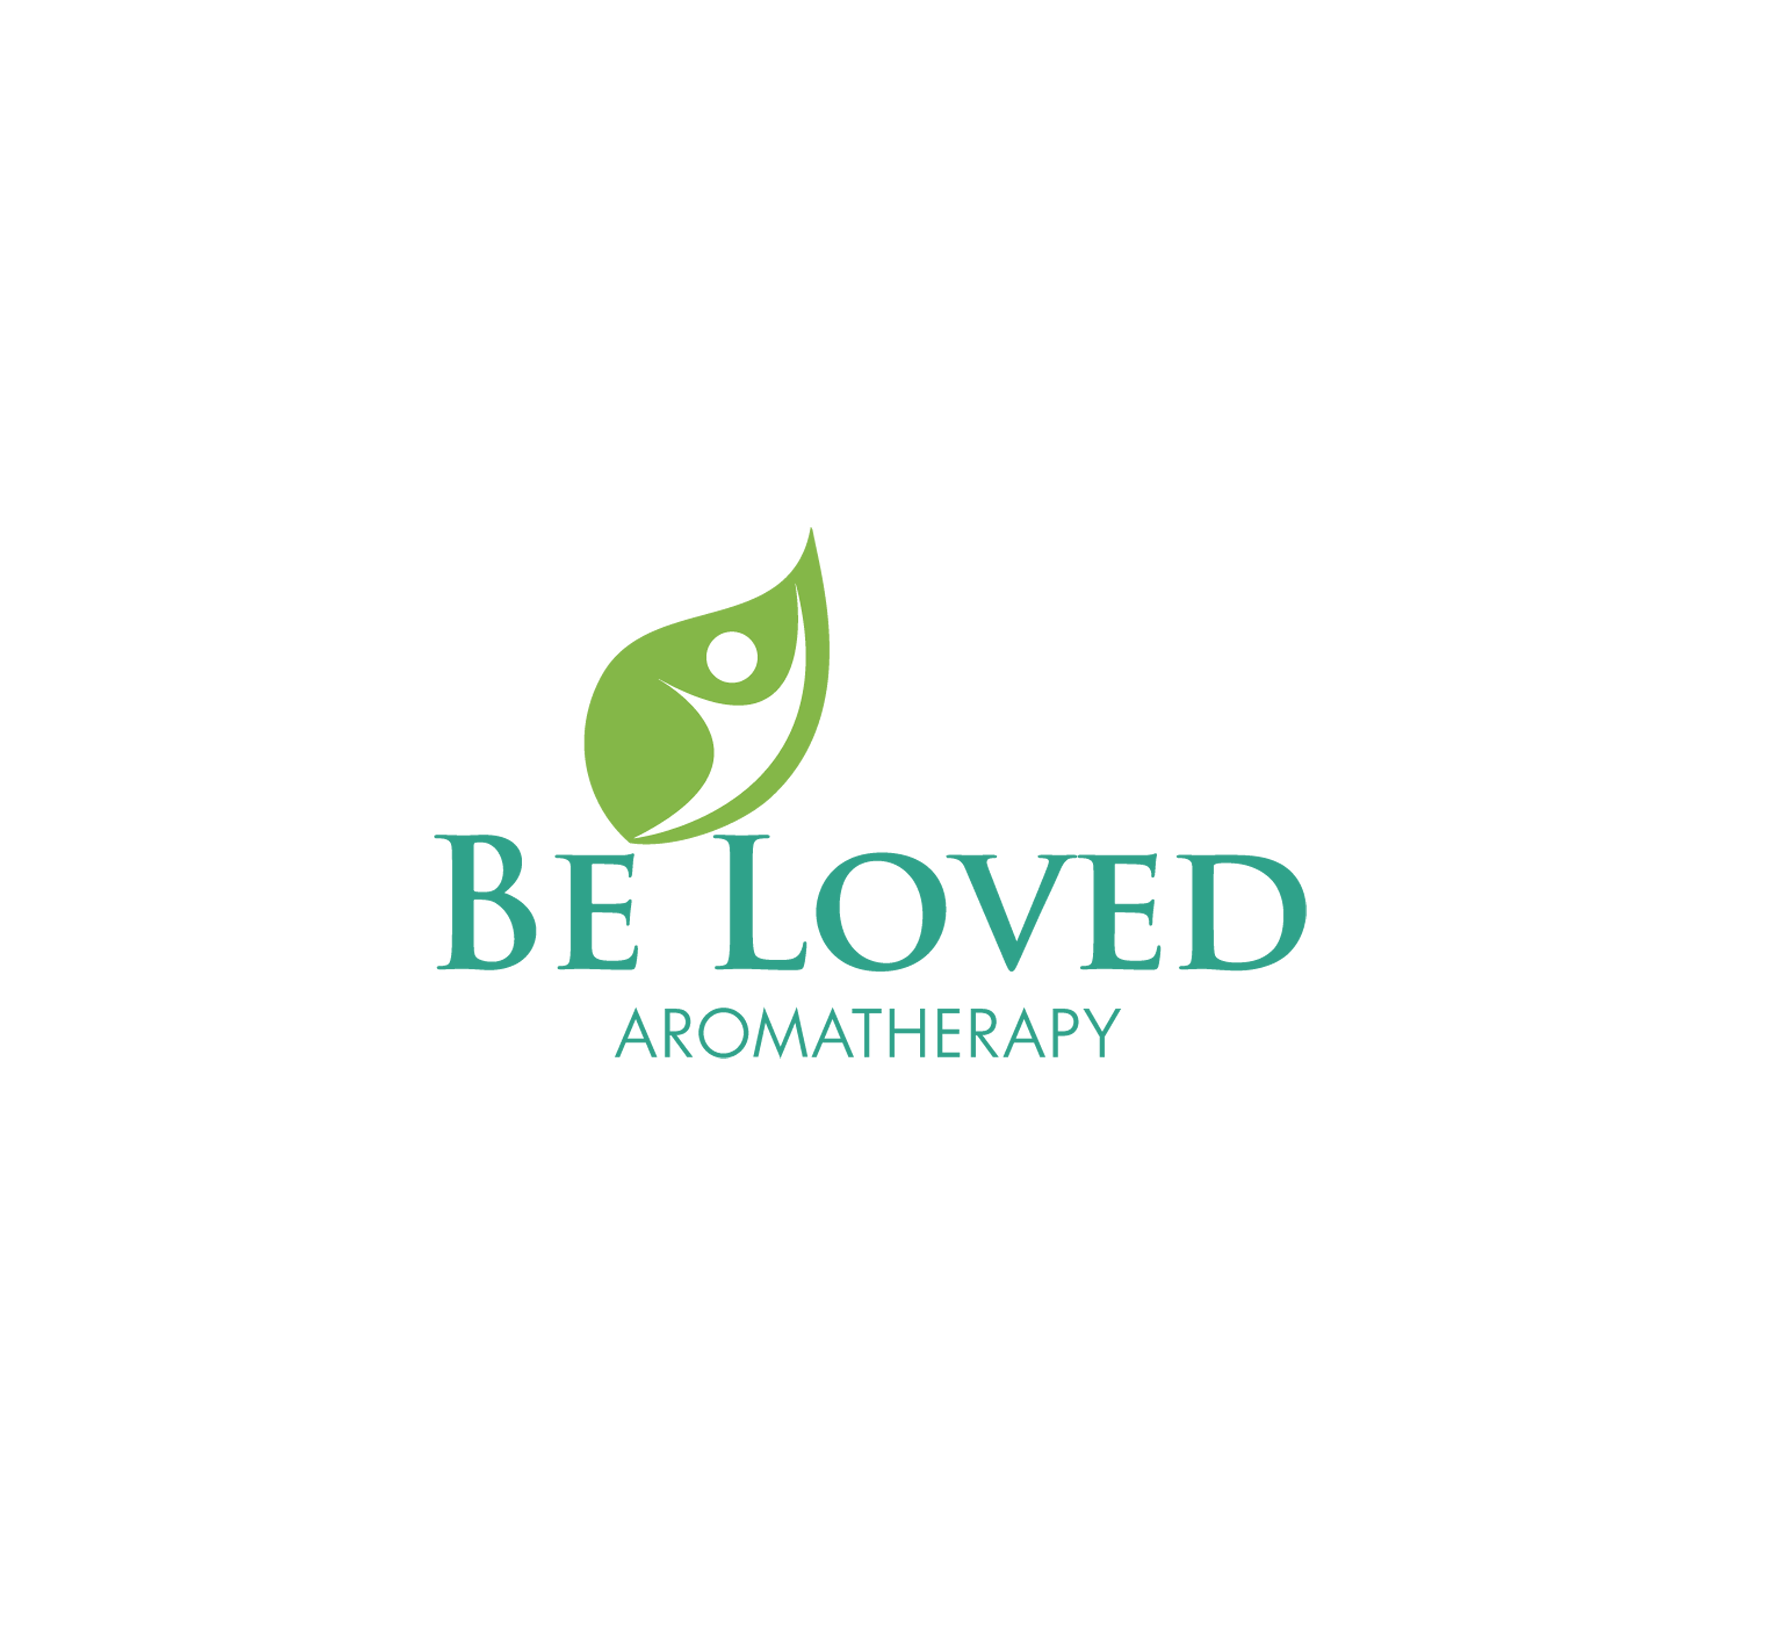 Logo Design by luna - Entry No. 73 in the Logo Design Contest Fun Logo Design for Be Loved Aromatherapy.